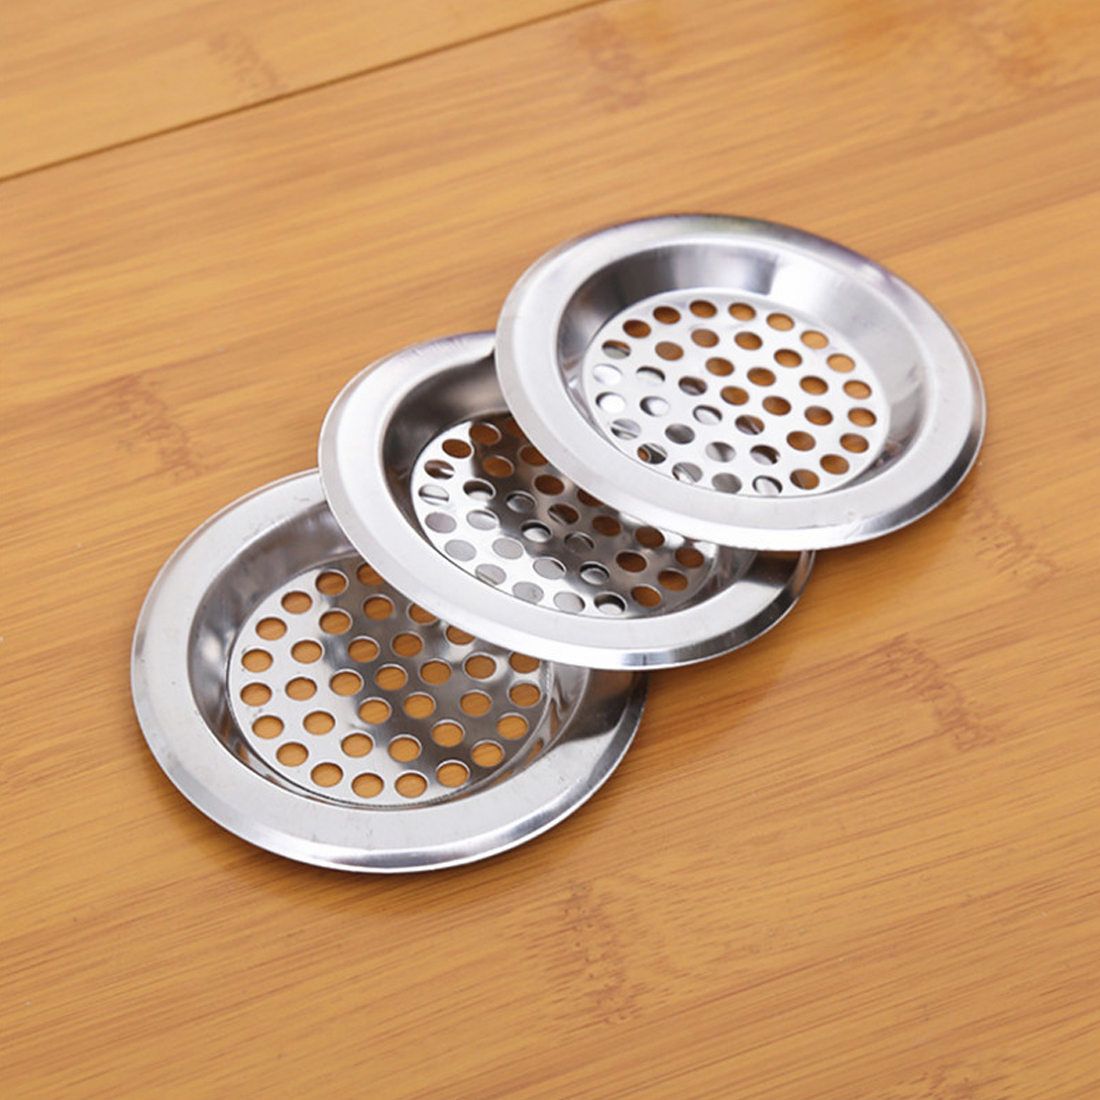 New Stainless Steel ABS Kitchen Sink Stopper Plug For Bath Drain Drainer Strainer Basin Water Rubber Sink Filter Cover Sinkhole